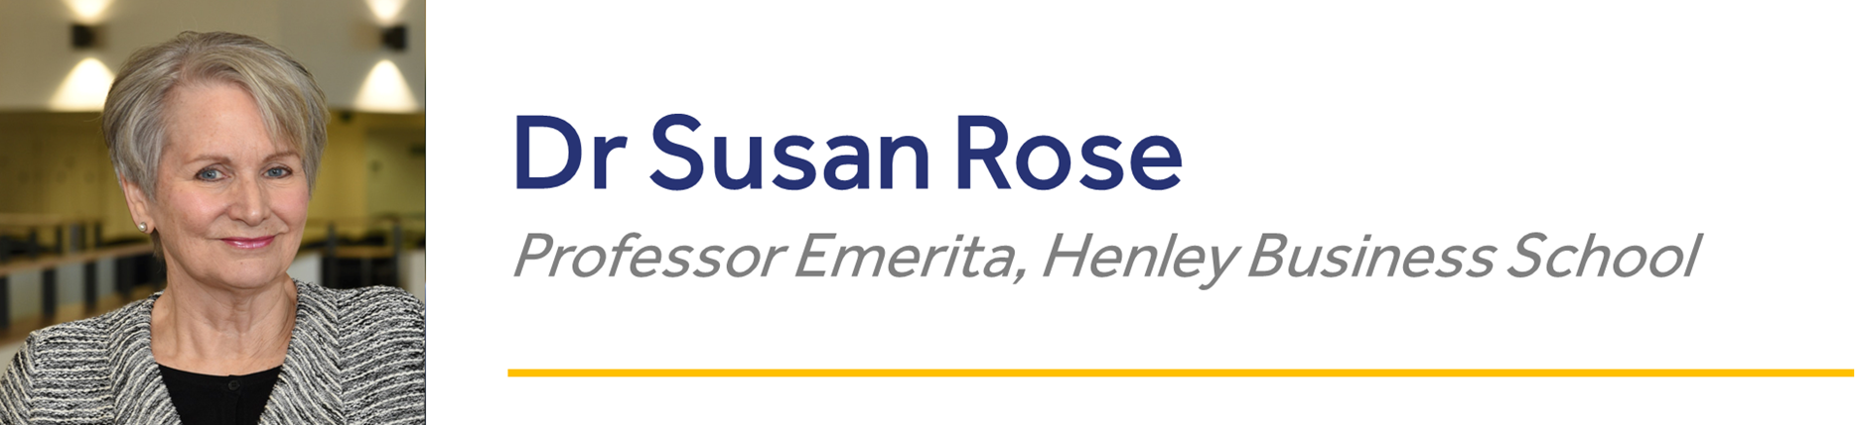 HCCM-People-Susan-Rose.png?mtime=20200423103336#asset:133229